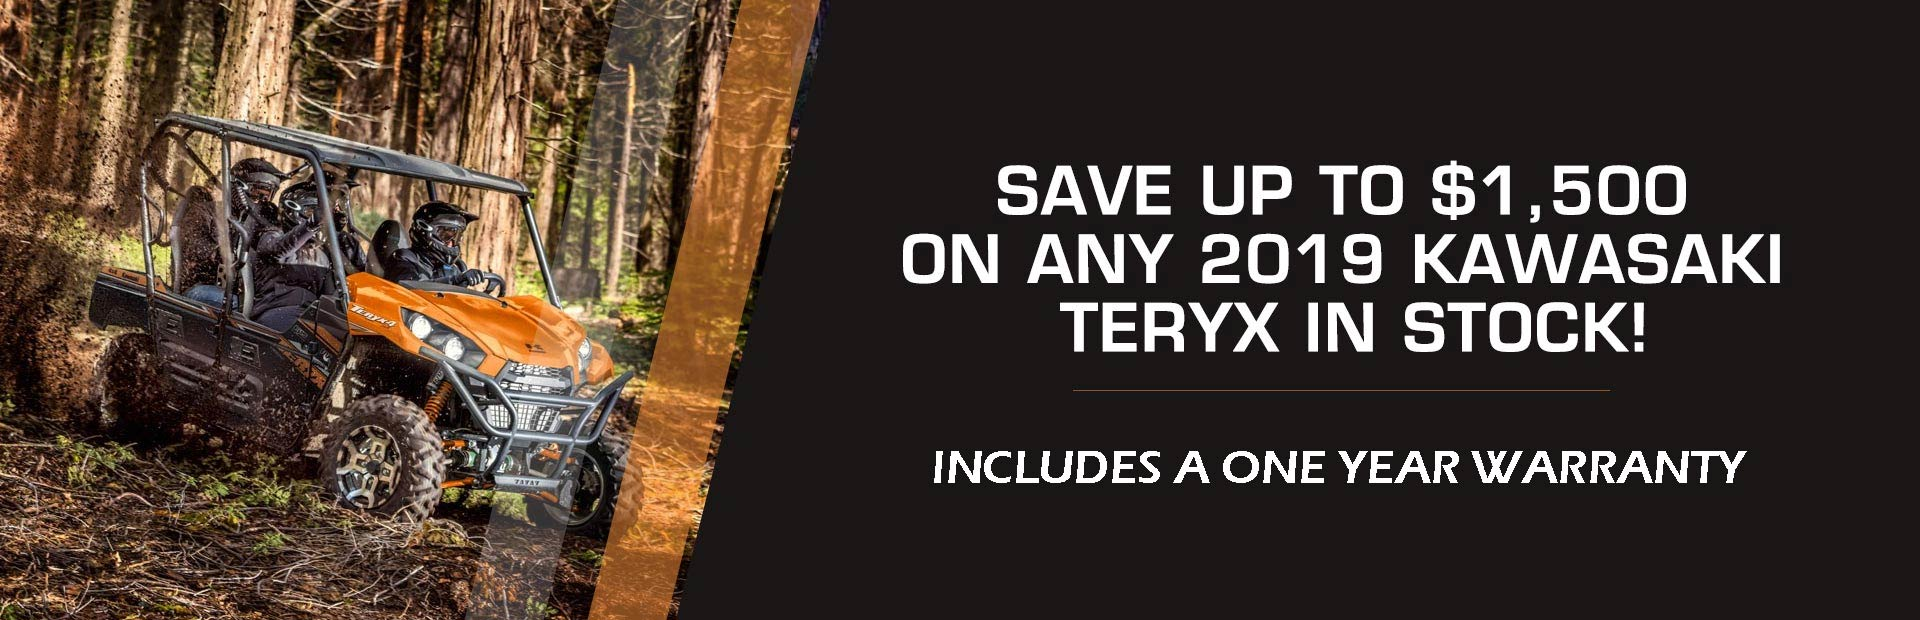 Save up to $1,500 on any 2019 Kawasaki Teryx in stock! Click here to view the models.